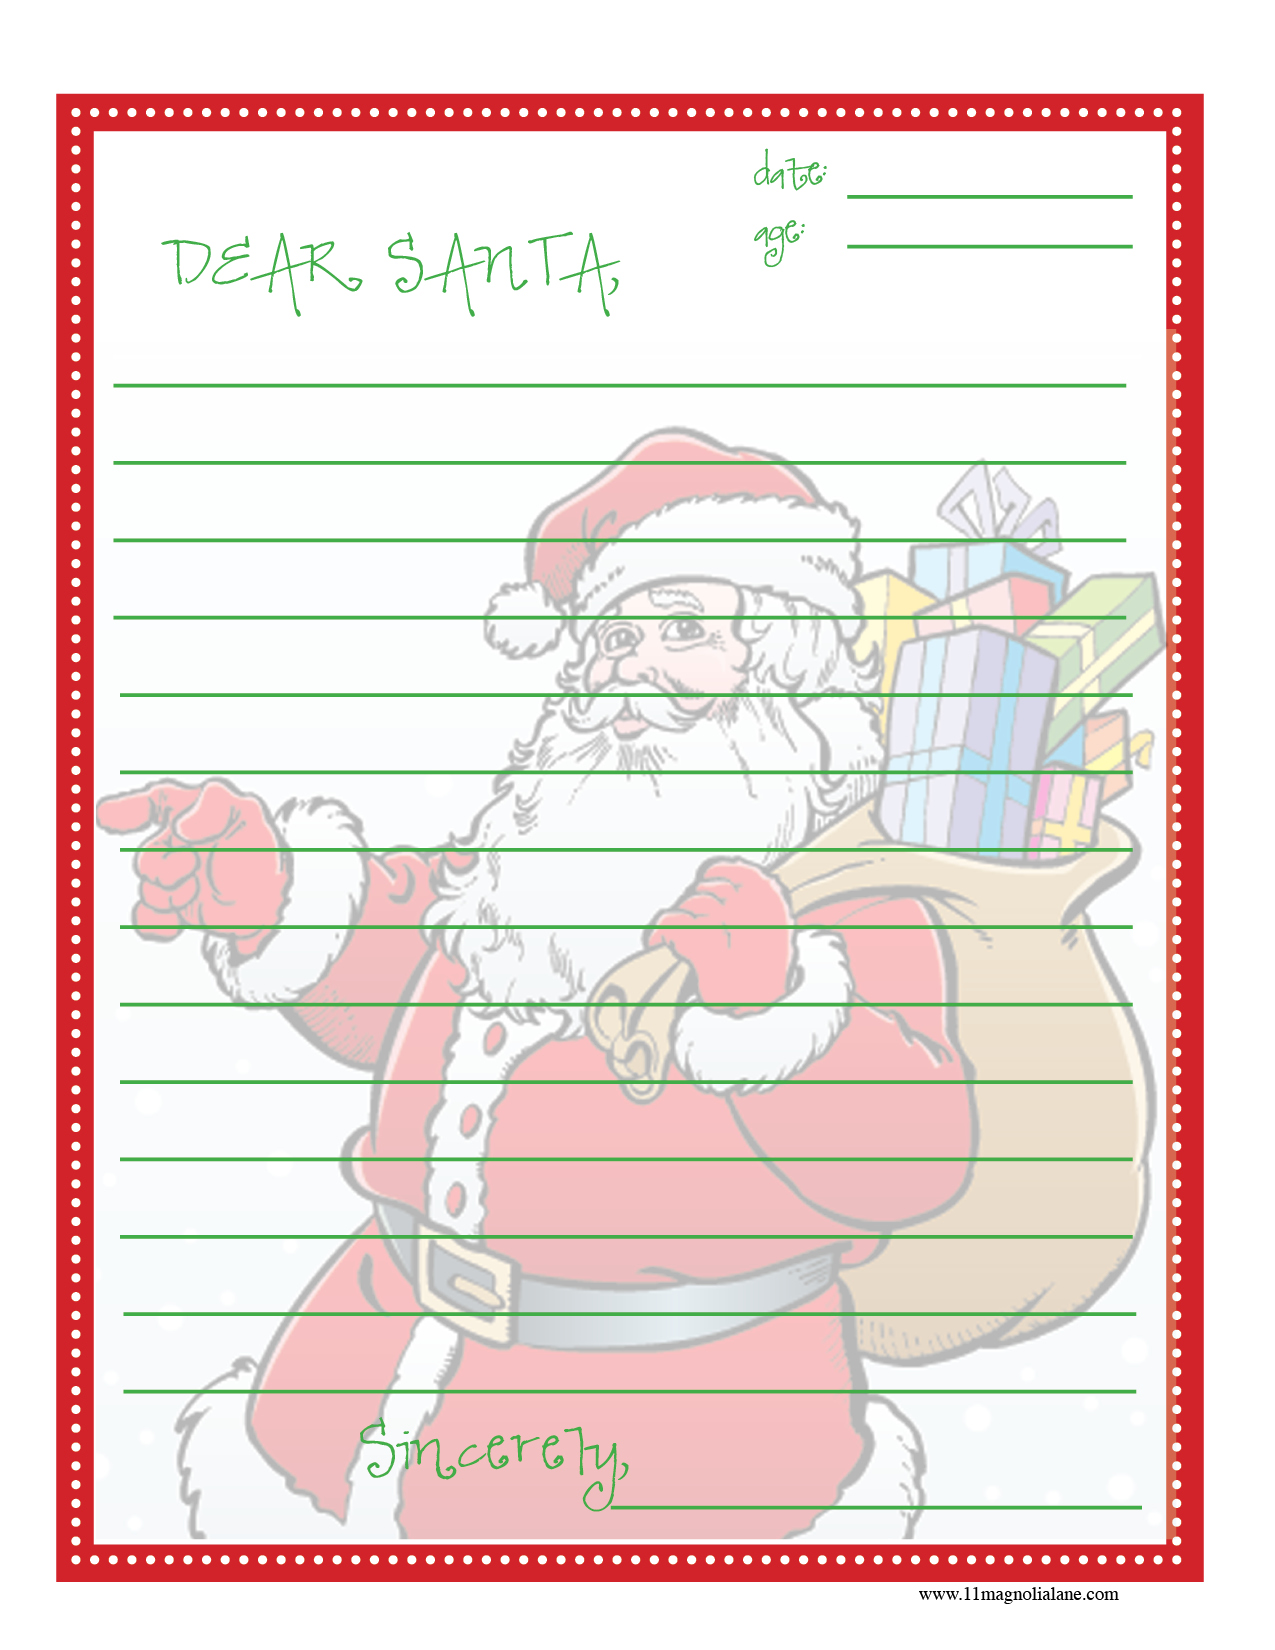 Dear Santa Letter  Christmas List Template For Kids